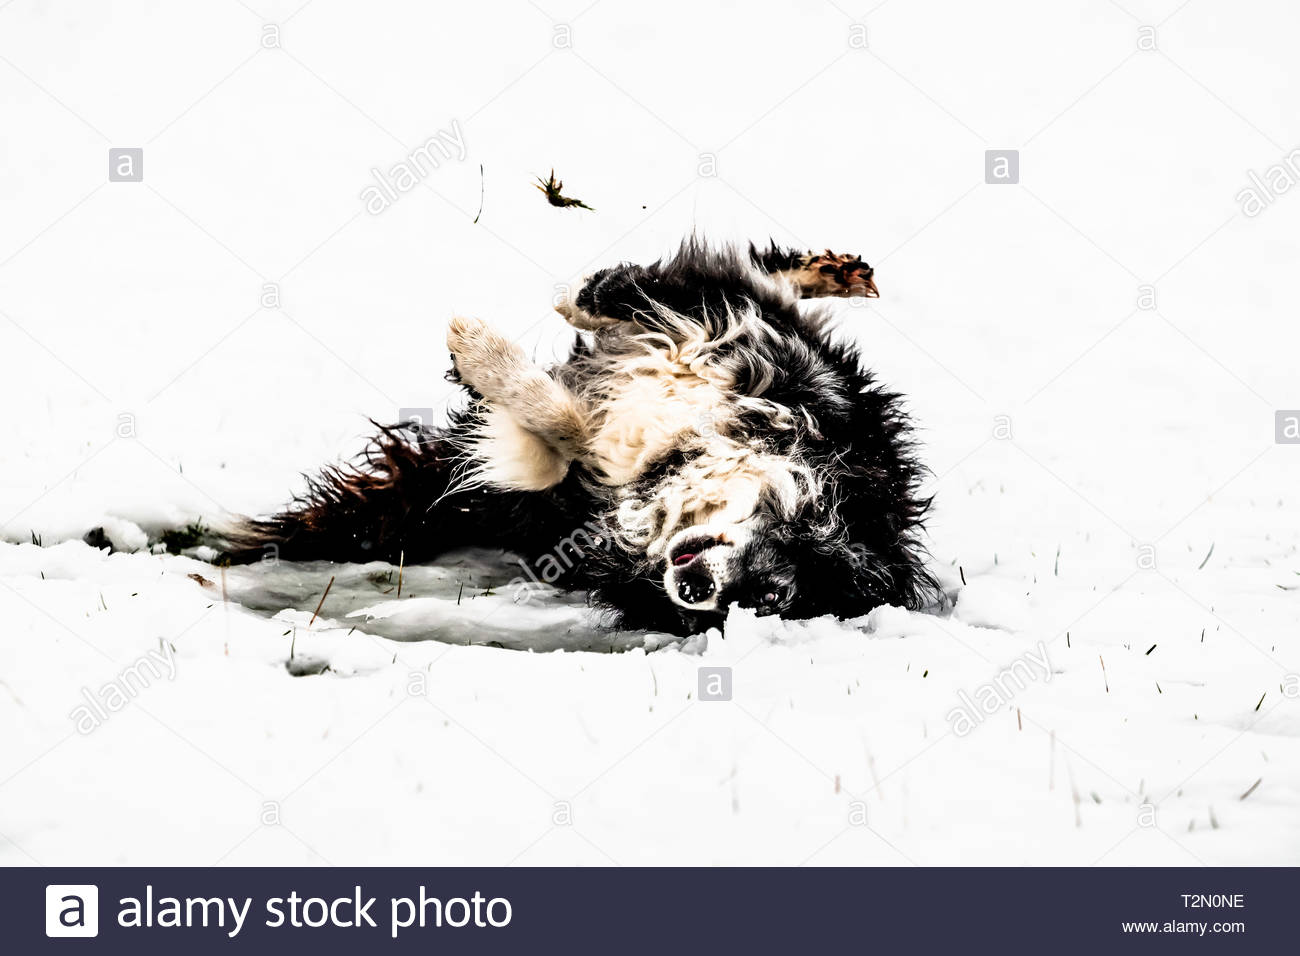 Camptown, Jedburgh, Scottish Borders, au Royaume-Uni. 3 avril 2019. Shepherd Helen Brown donne son collies un rapide tôt le matin à pied entre les lieux d'agnelage à Chatto ferme dans la vallée de Kale dans les contreforts de la Scottish Cheviots. Crédit : Chris Strickland / Alamy Live News Photo Stock